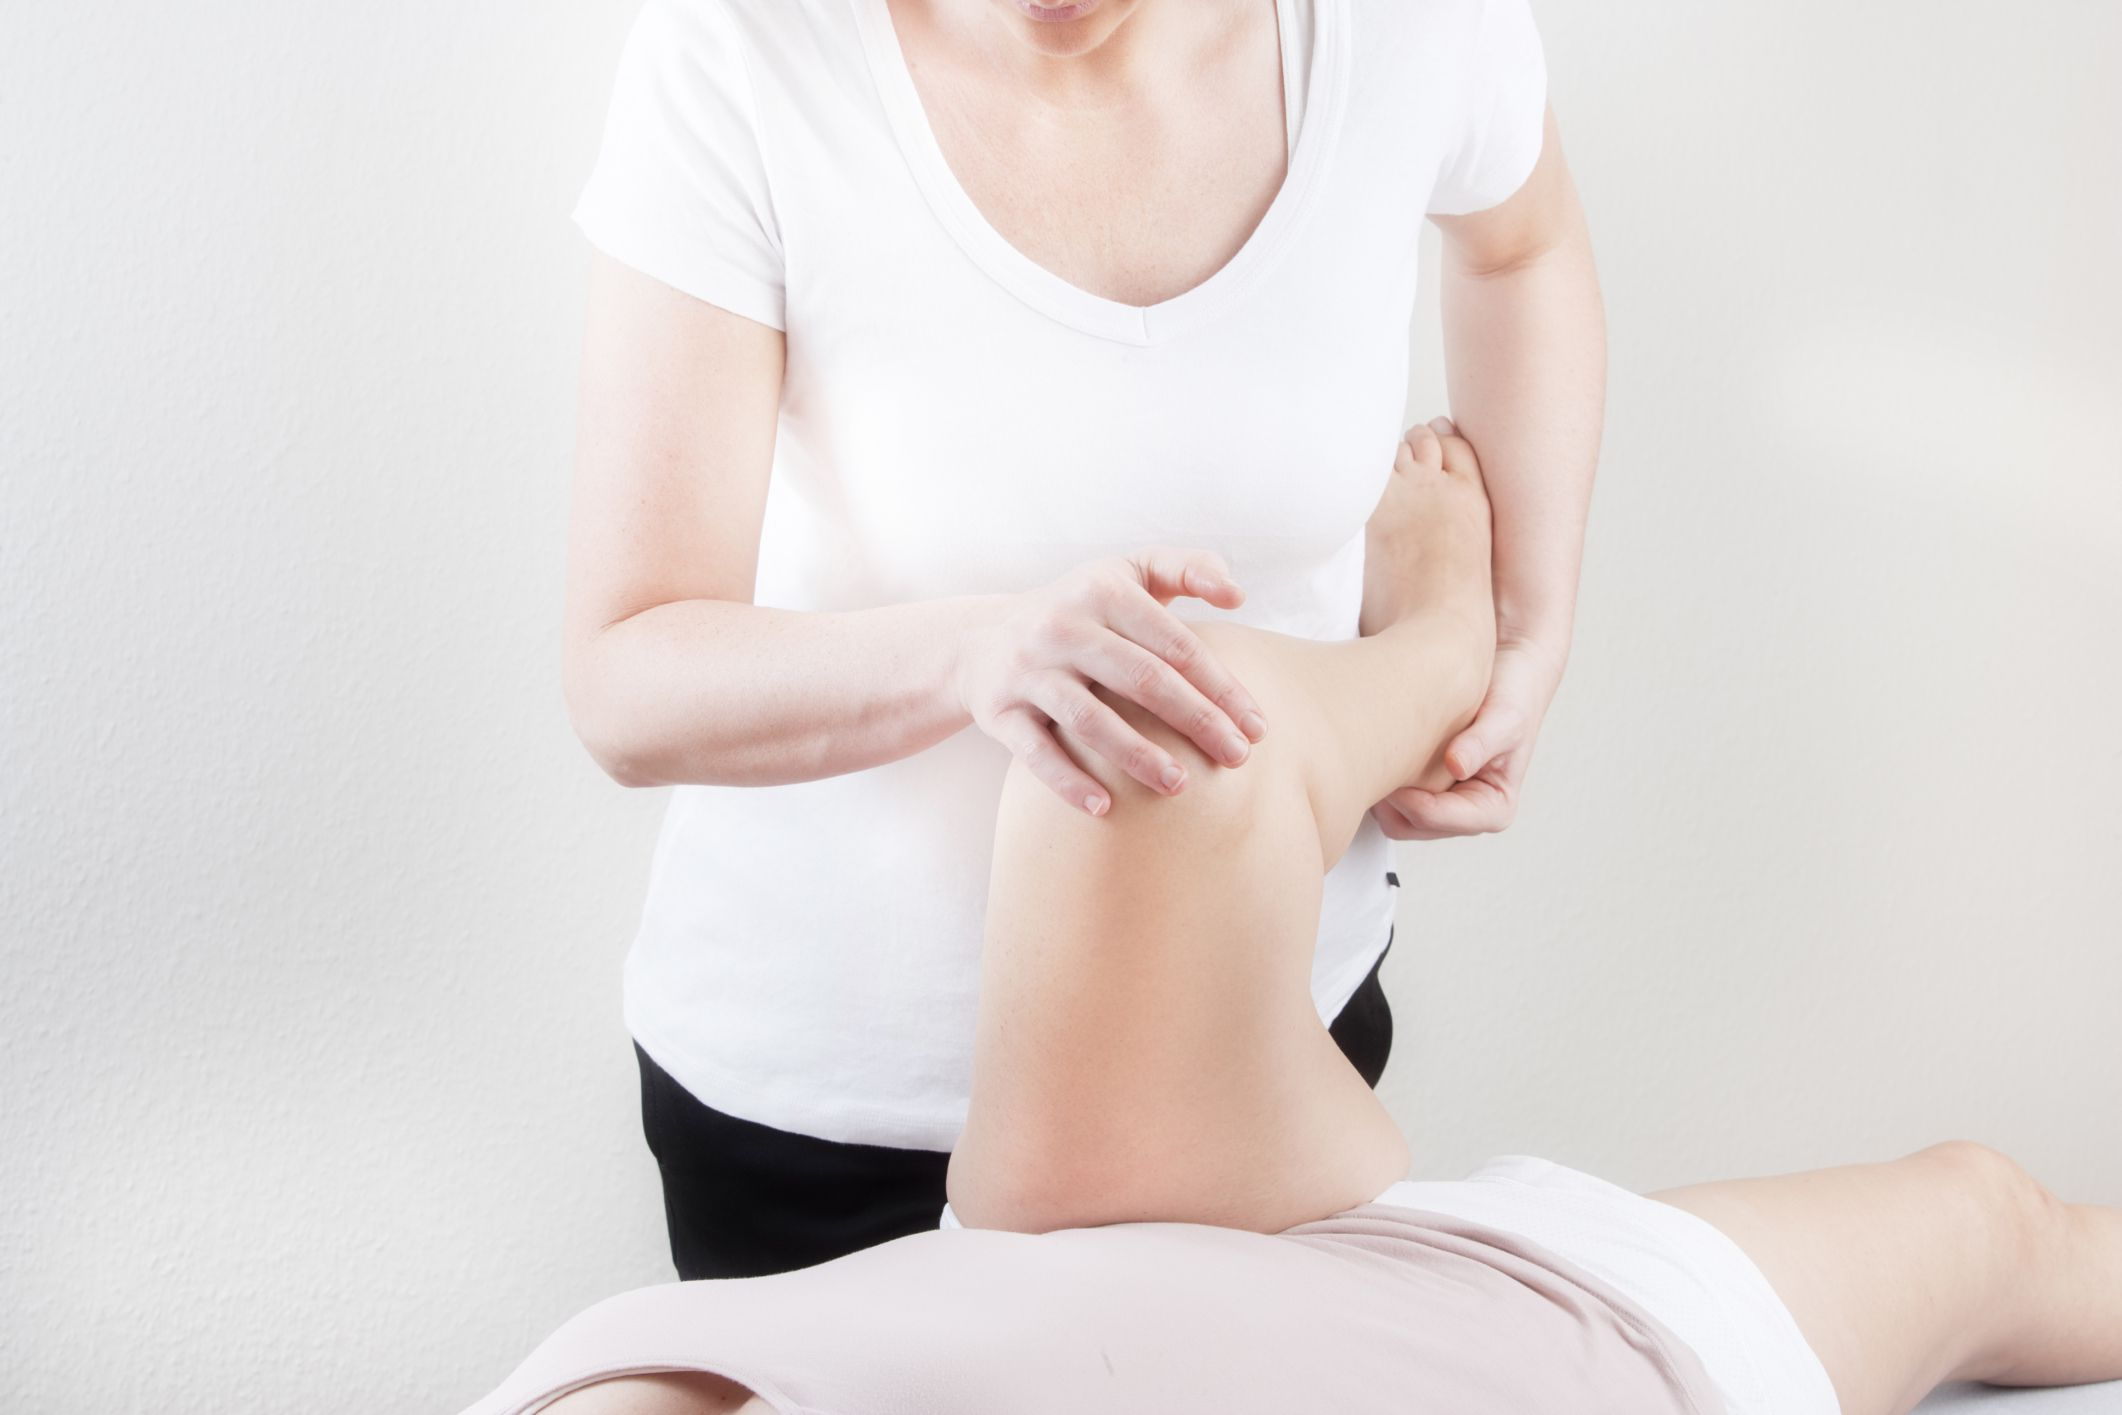 A person performing physical therapy